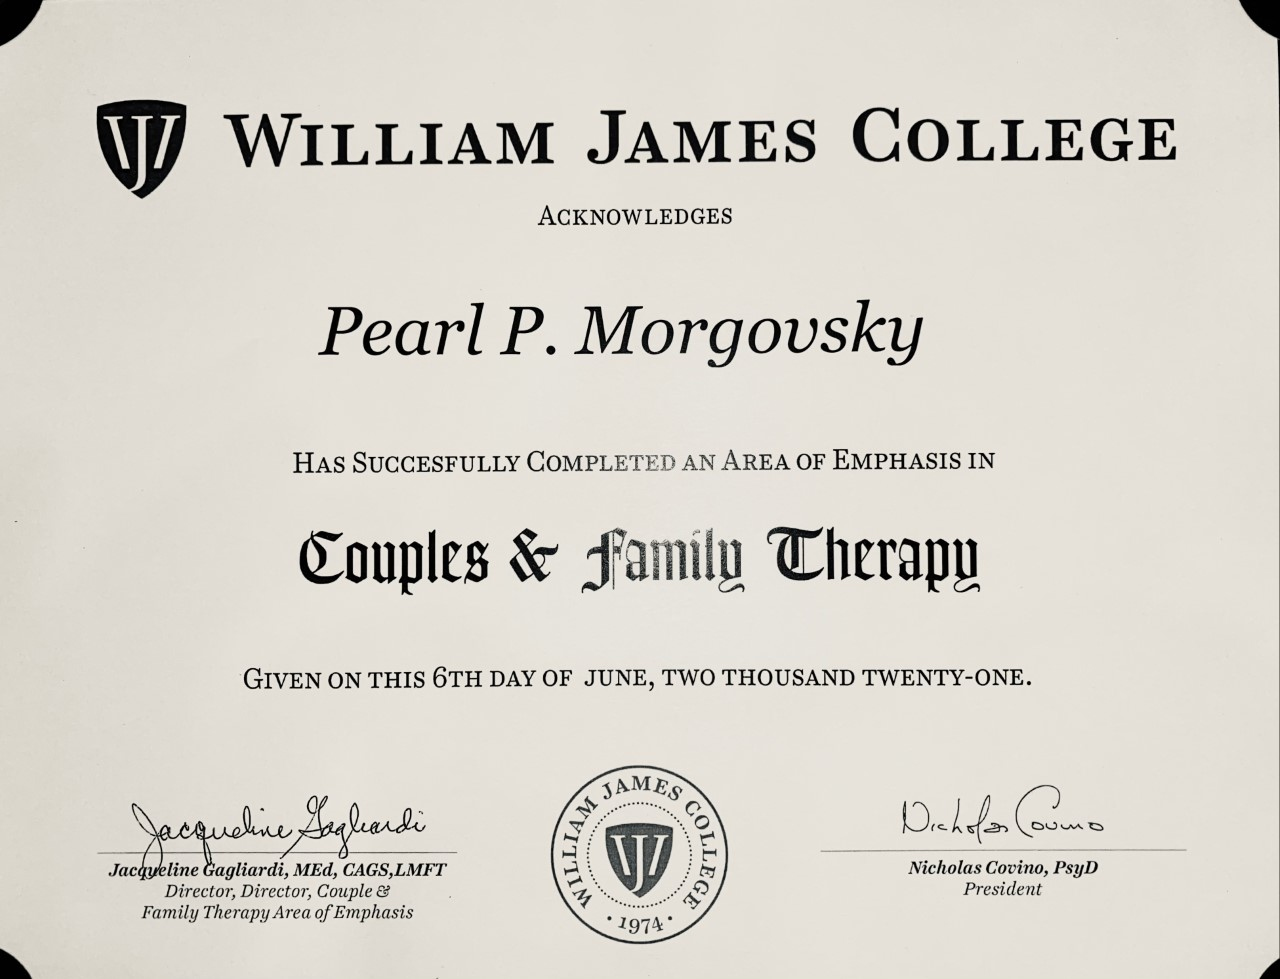 CoC William James College : Couples & Family Therapy